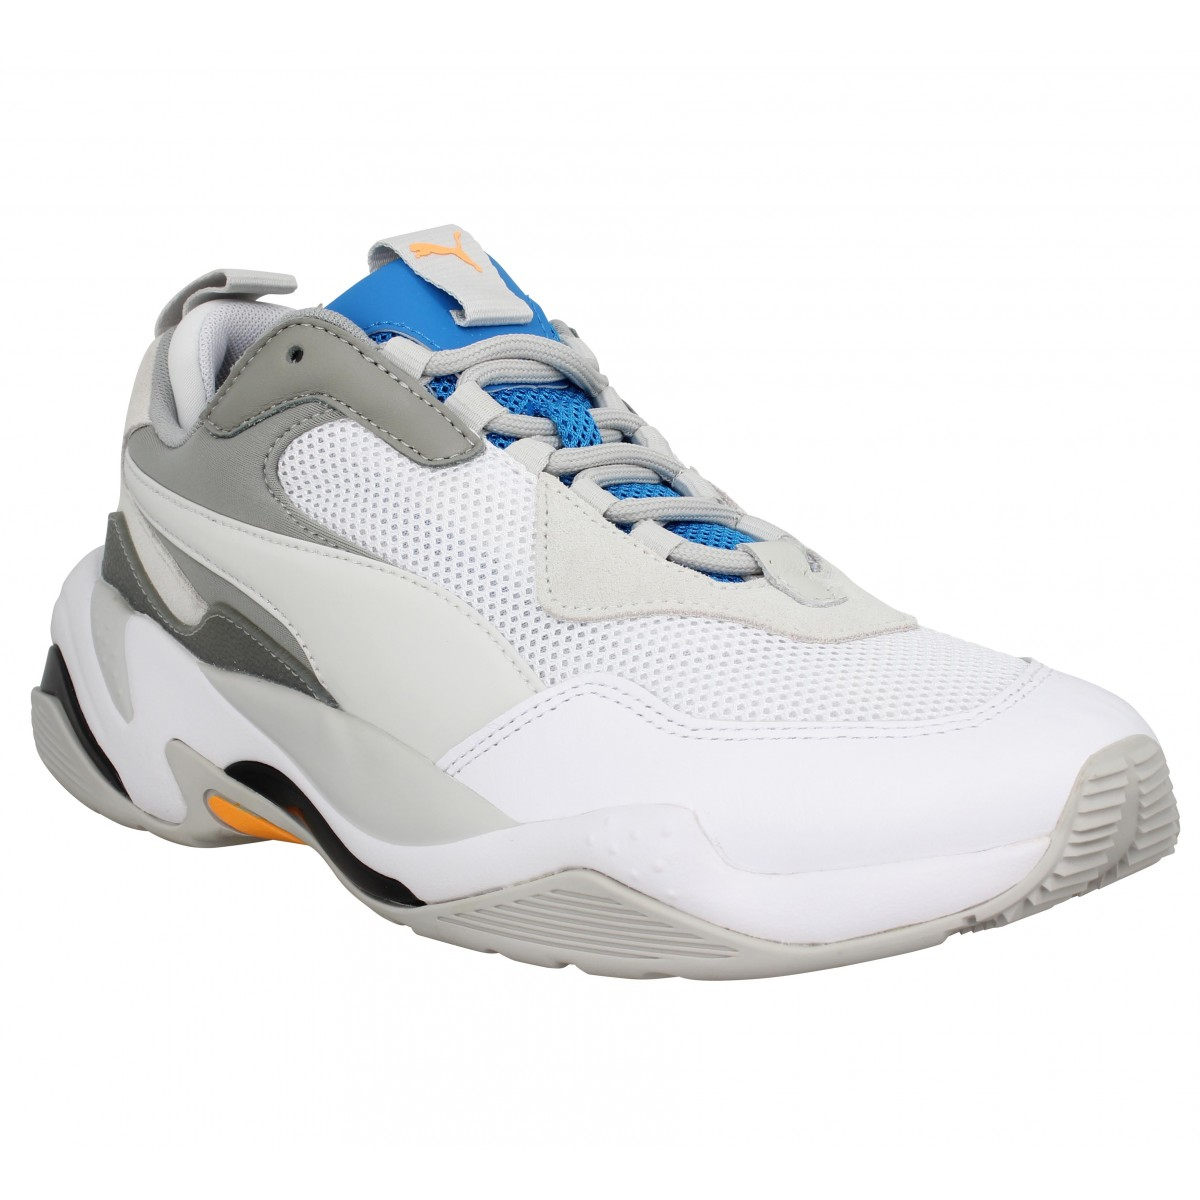 chaussures homme puma blanche